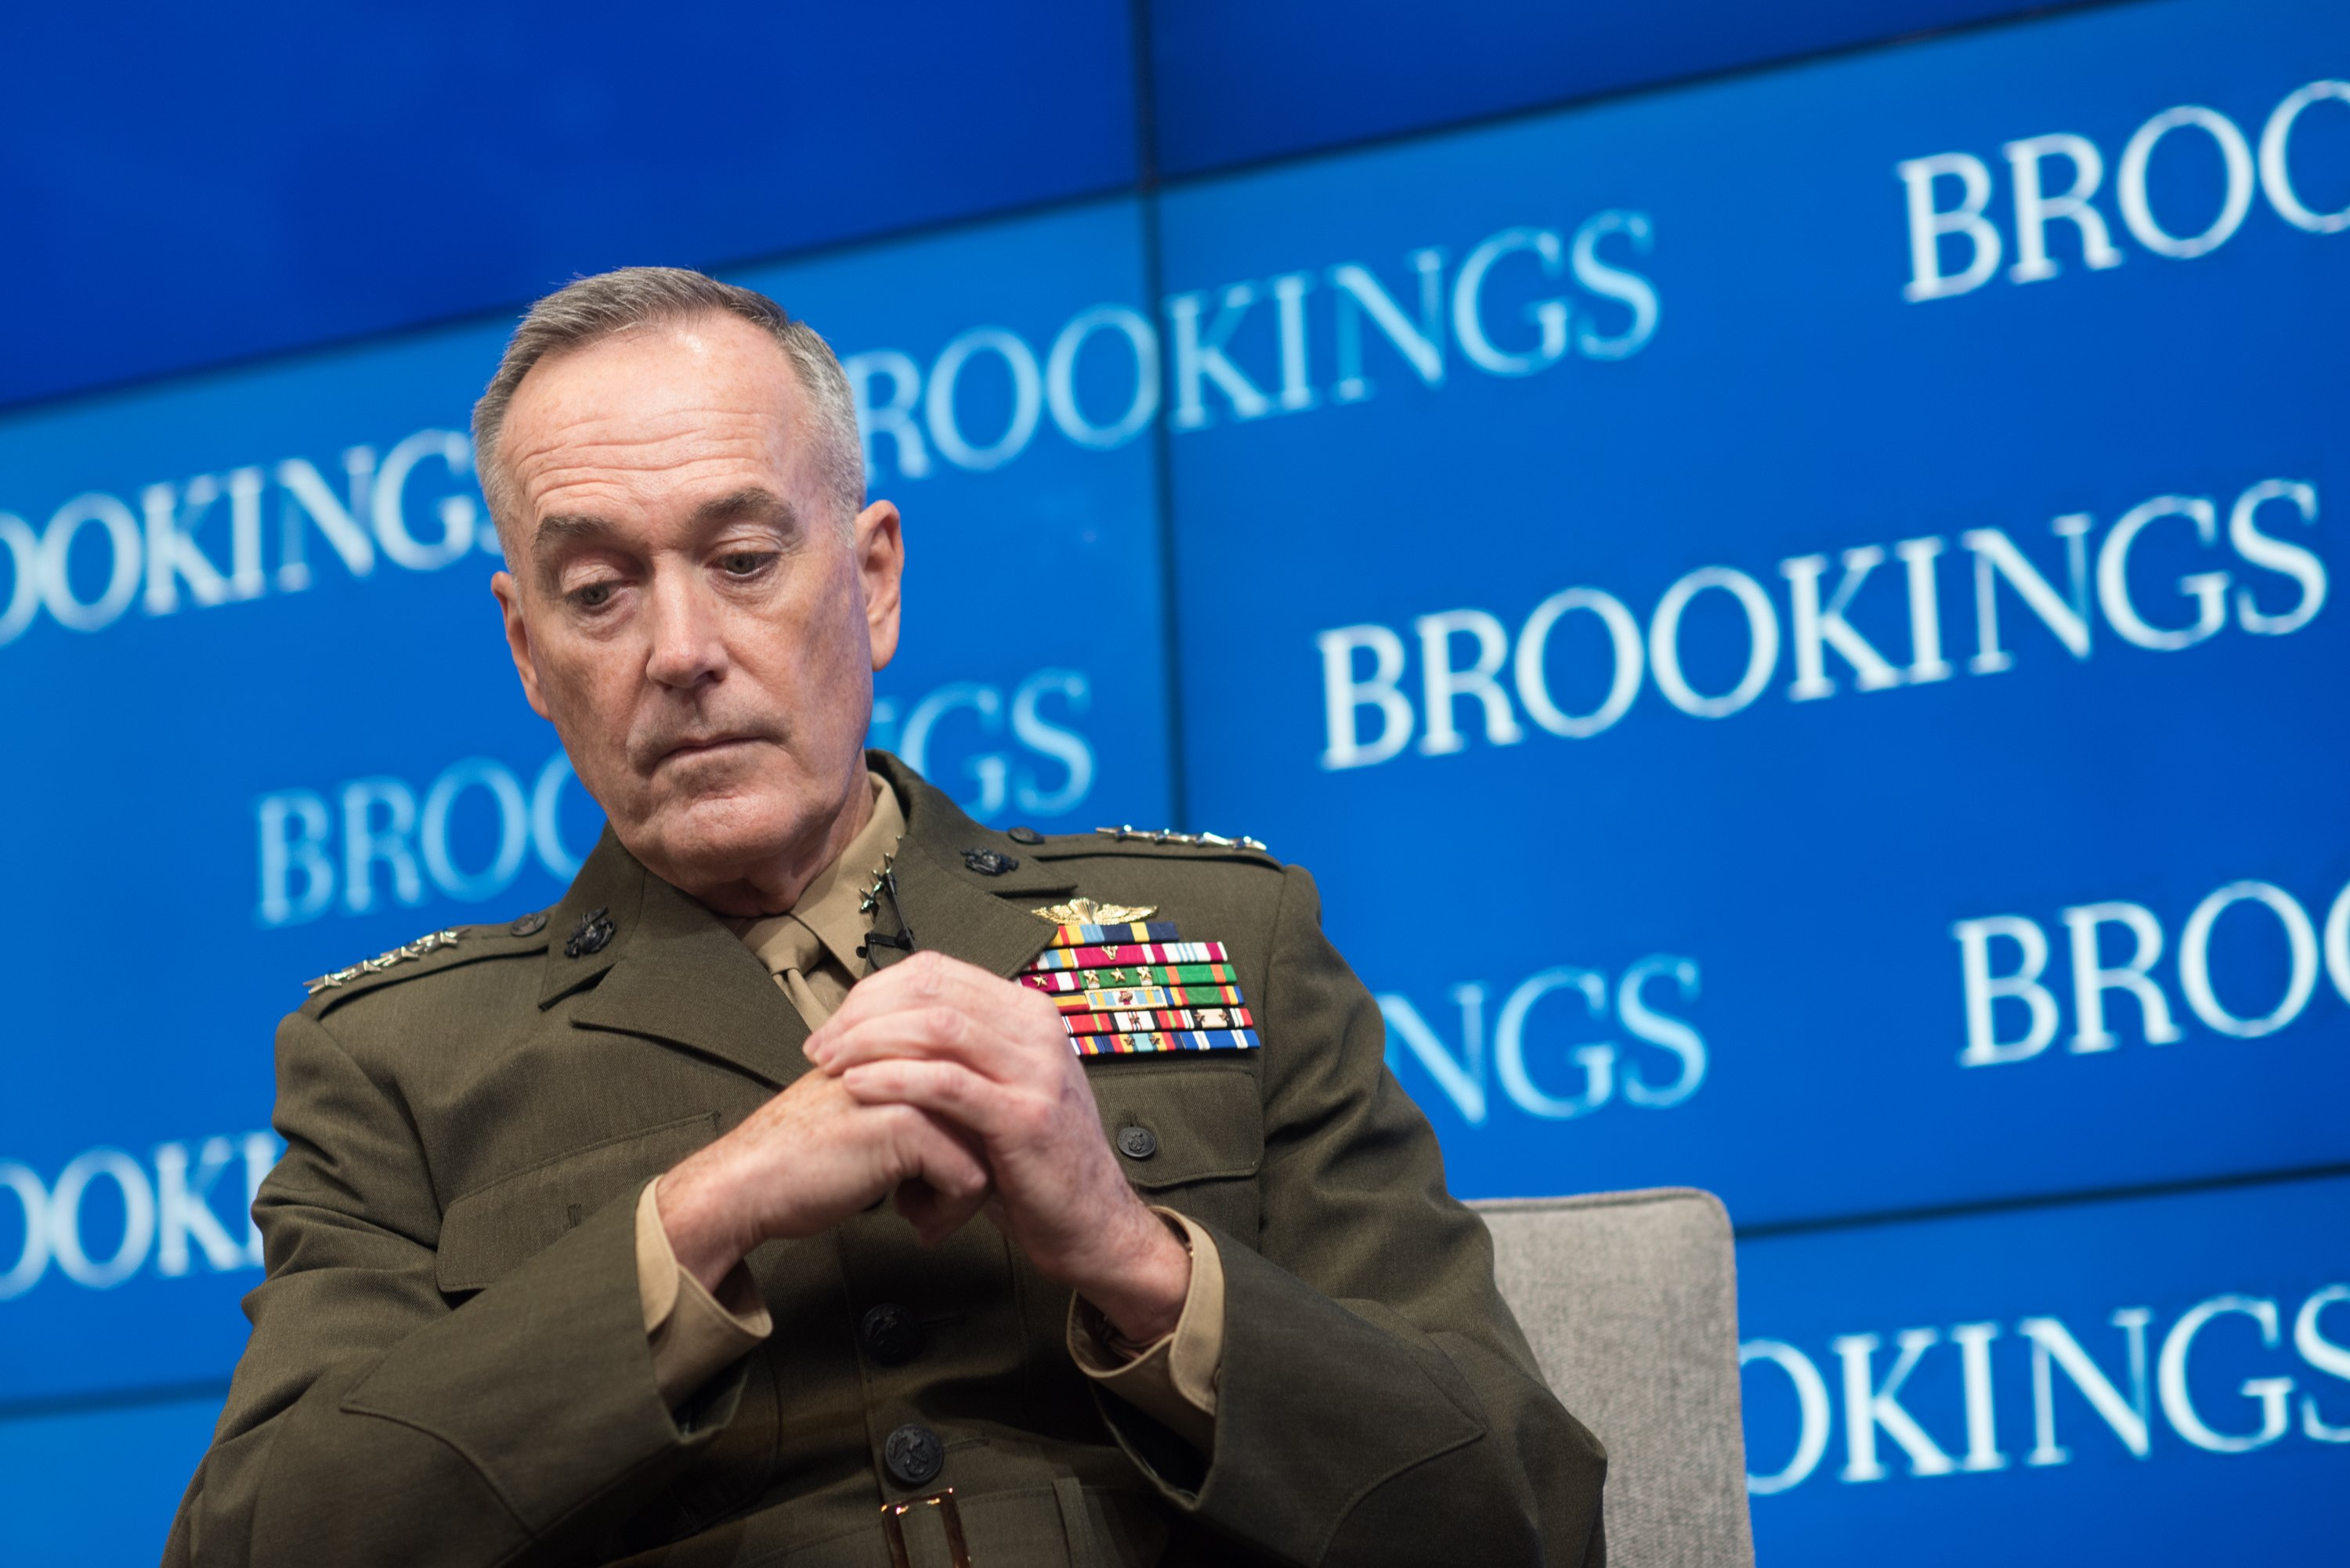 Gen. Joseph F. Dunford, Jr., chairman of the Joint Chiefs of Staff, at the Brookings Institute Feb. 23, 2017 in Washington, D.C. DoD Photo